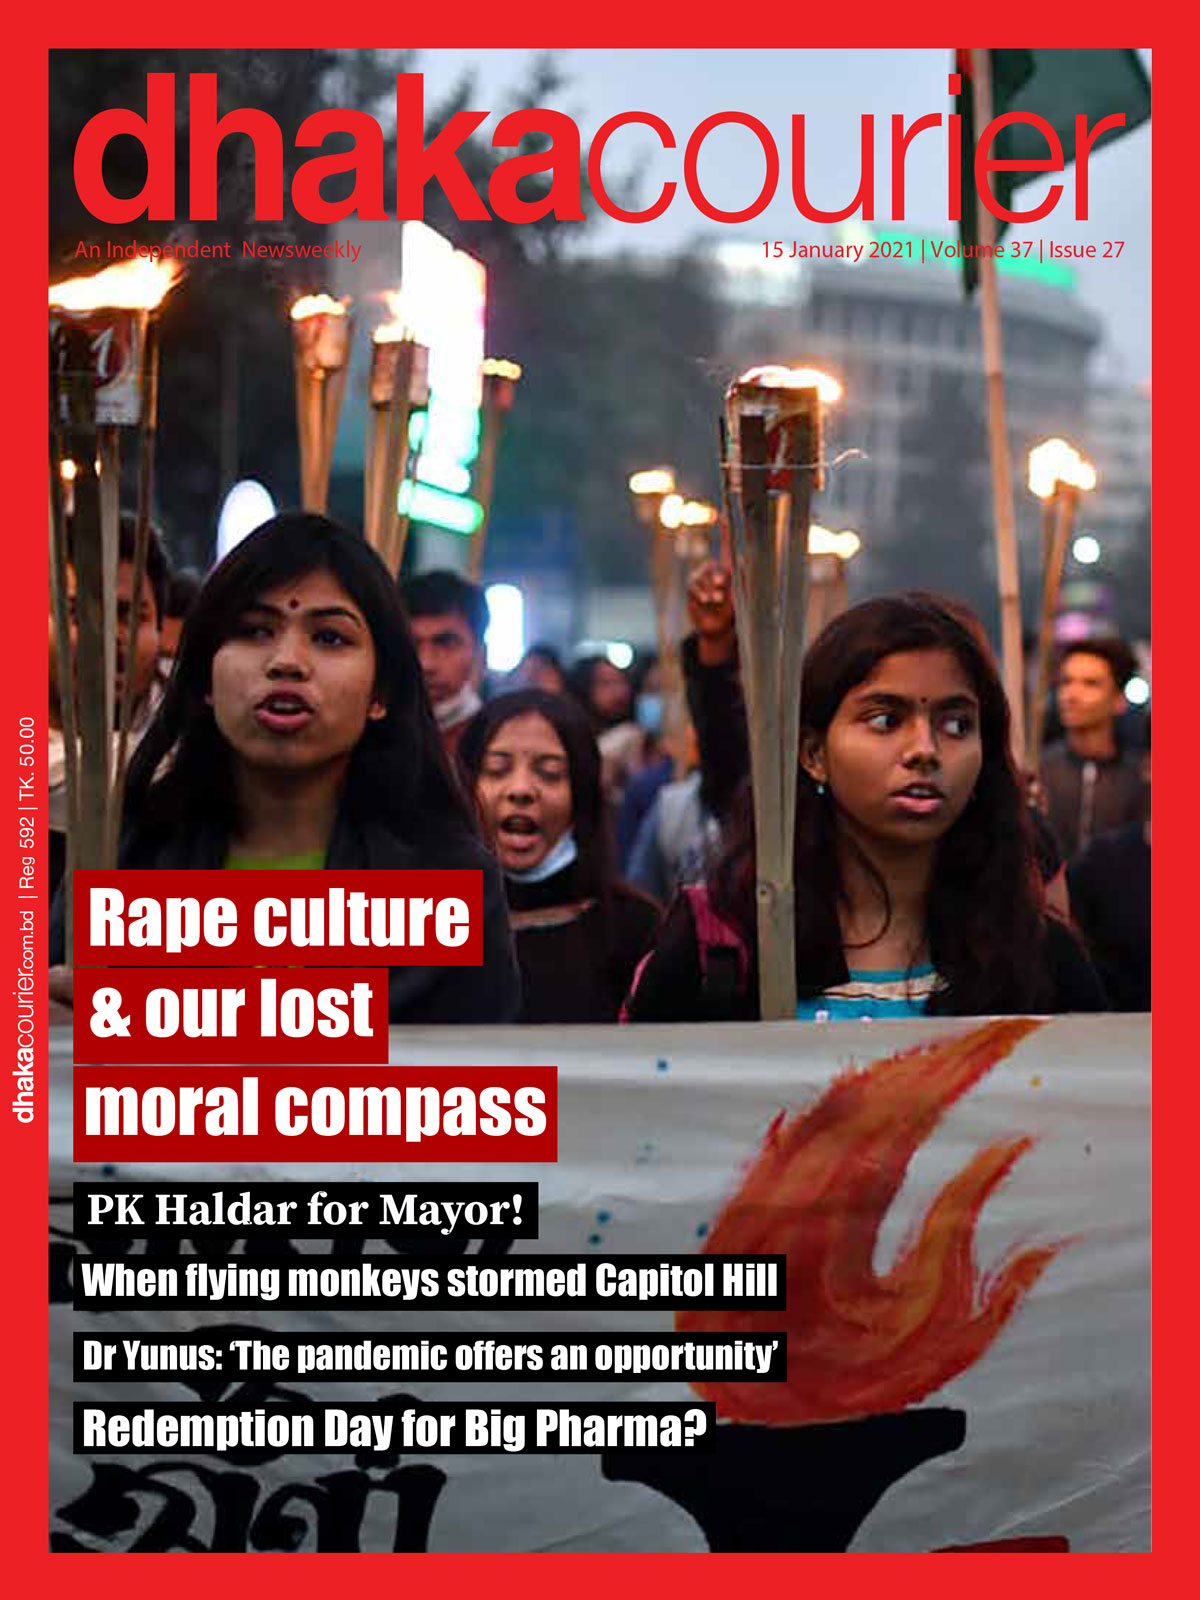 DhakaCourier Vol 37 Issue 27